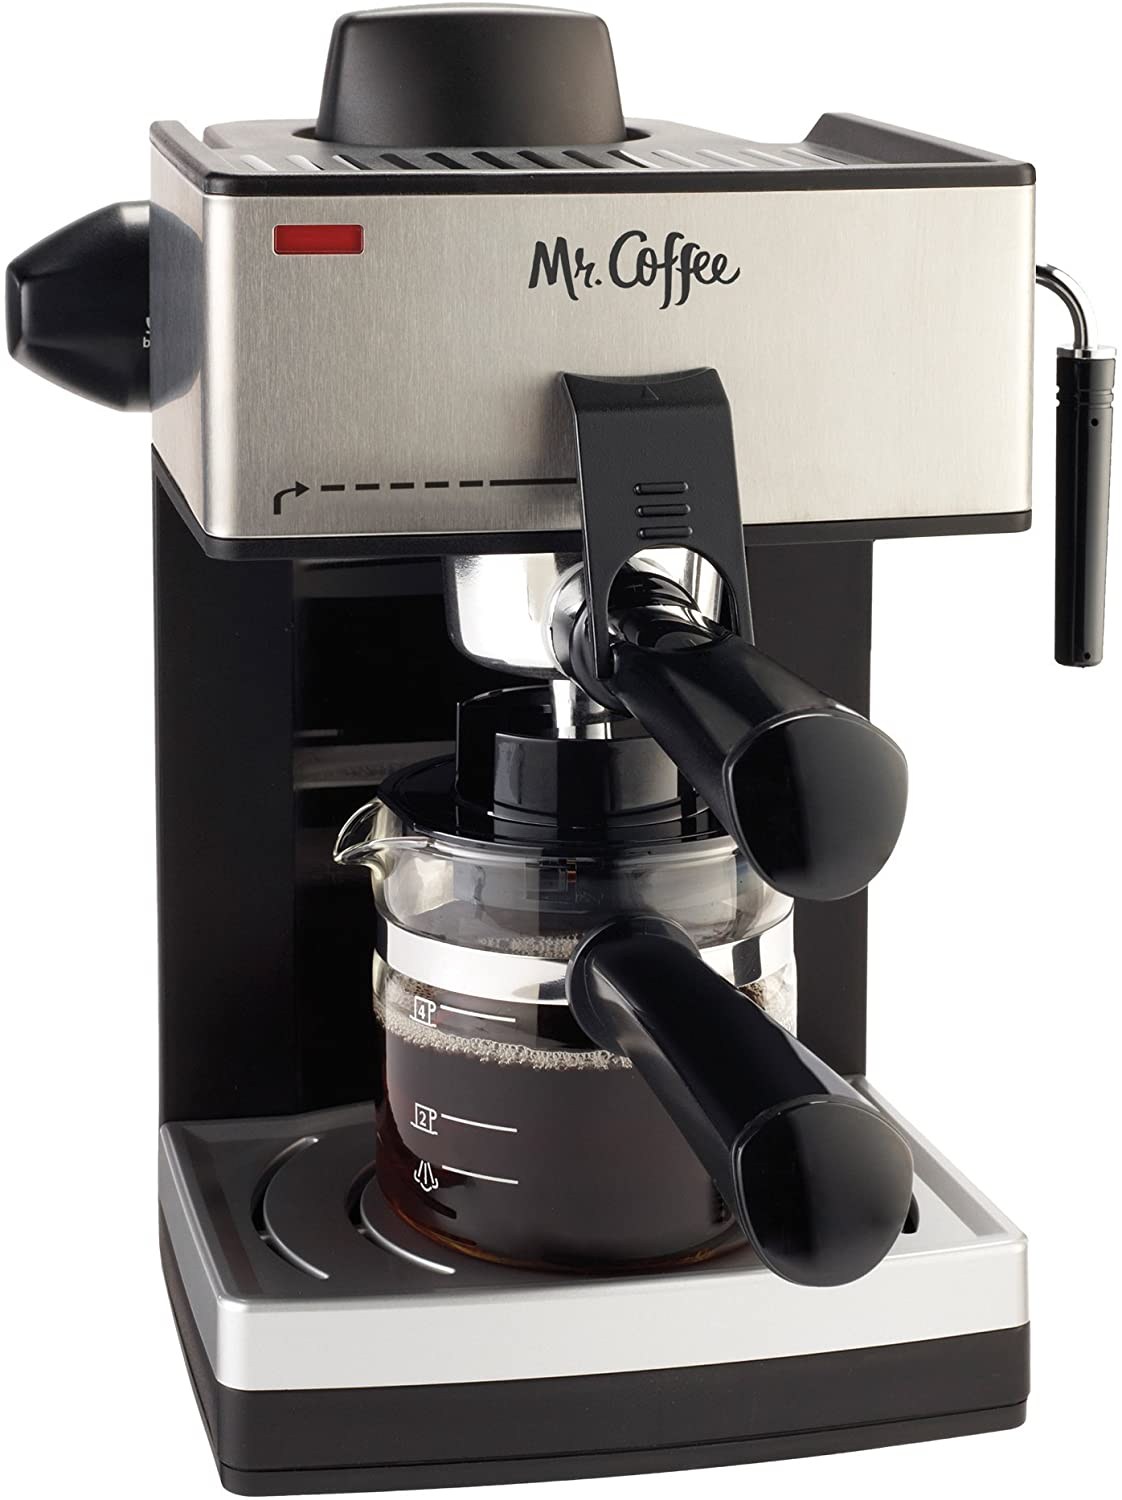 Mr.Coffee 4-cup Steam Espresso System